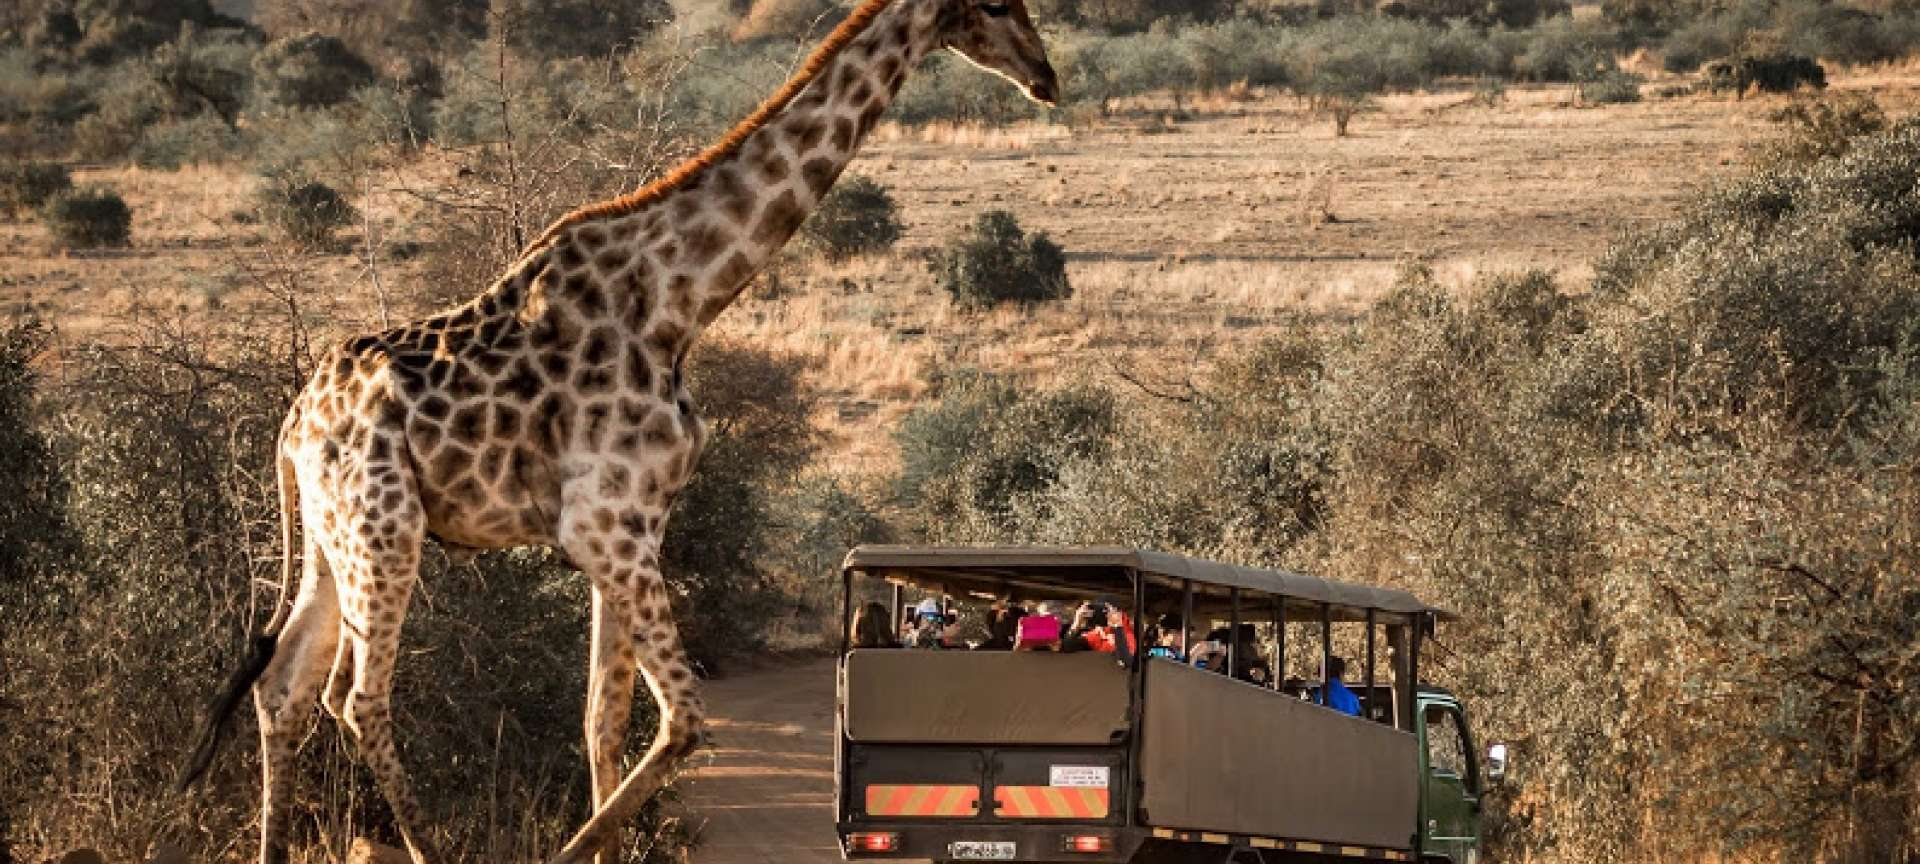 Malaria-free safari in South Africa - Africa Wildlife Safaris